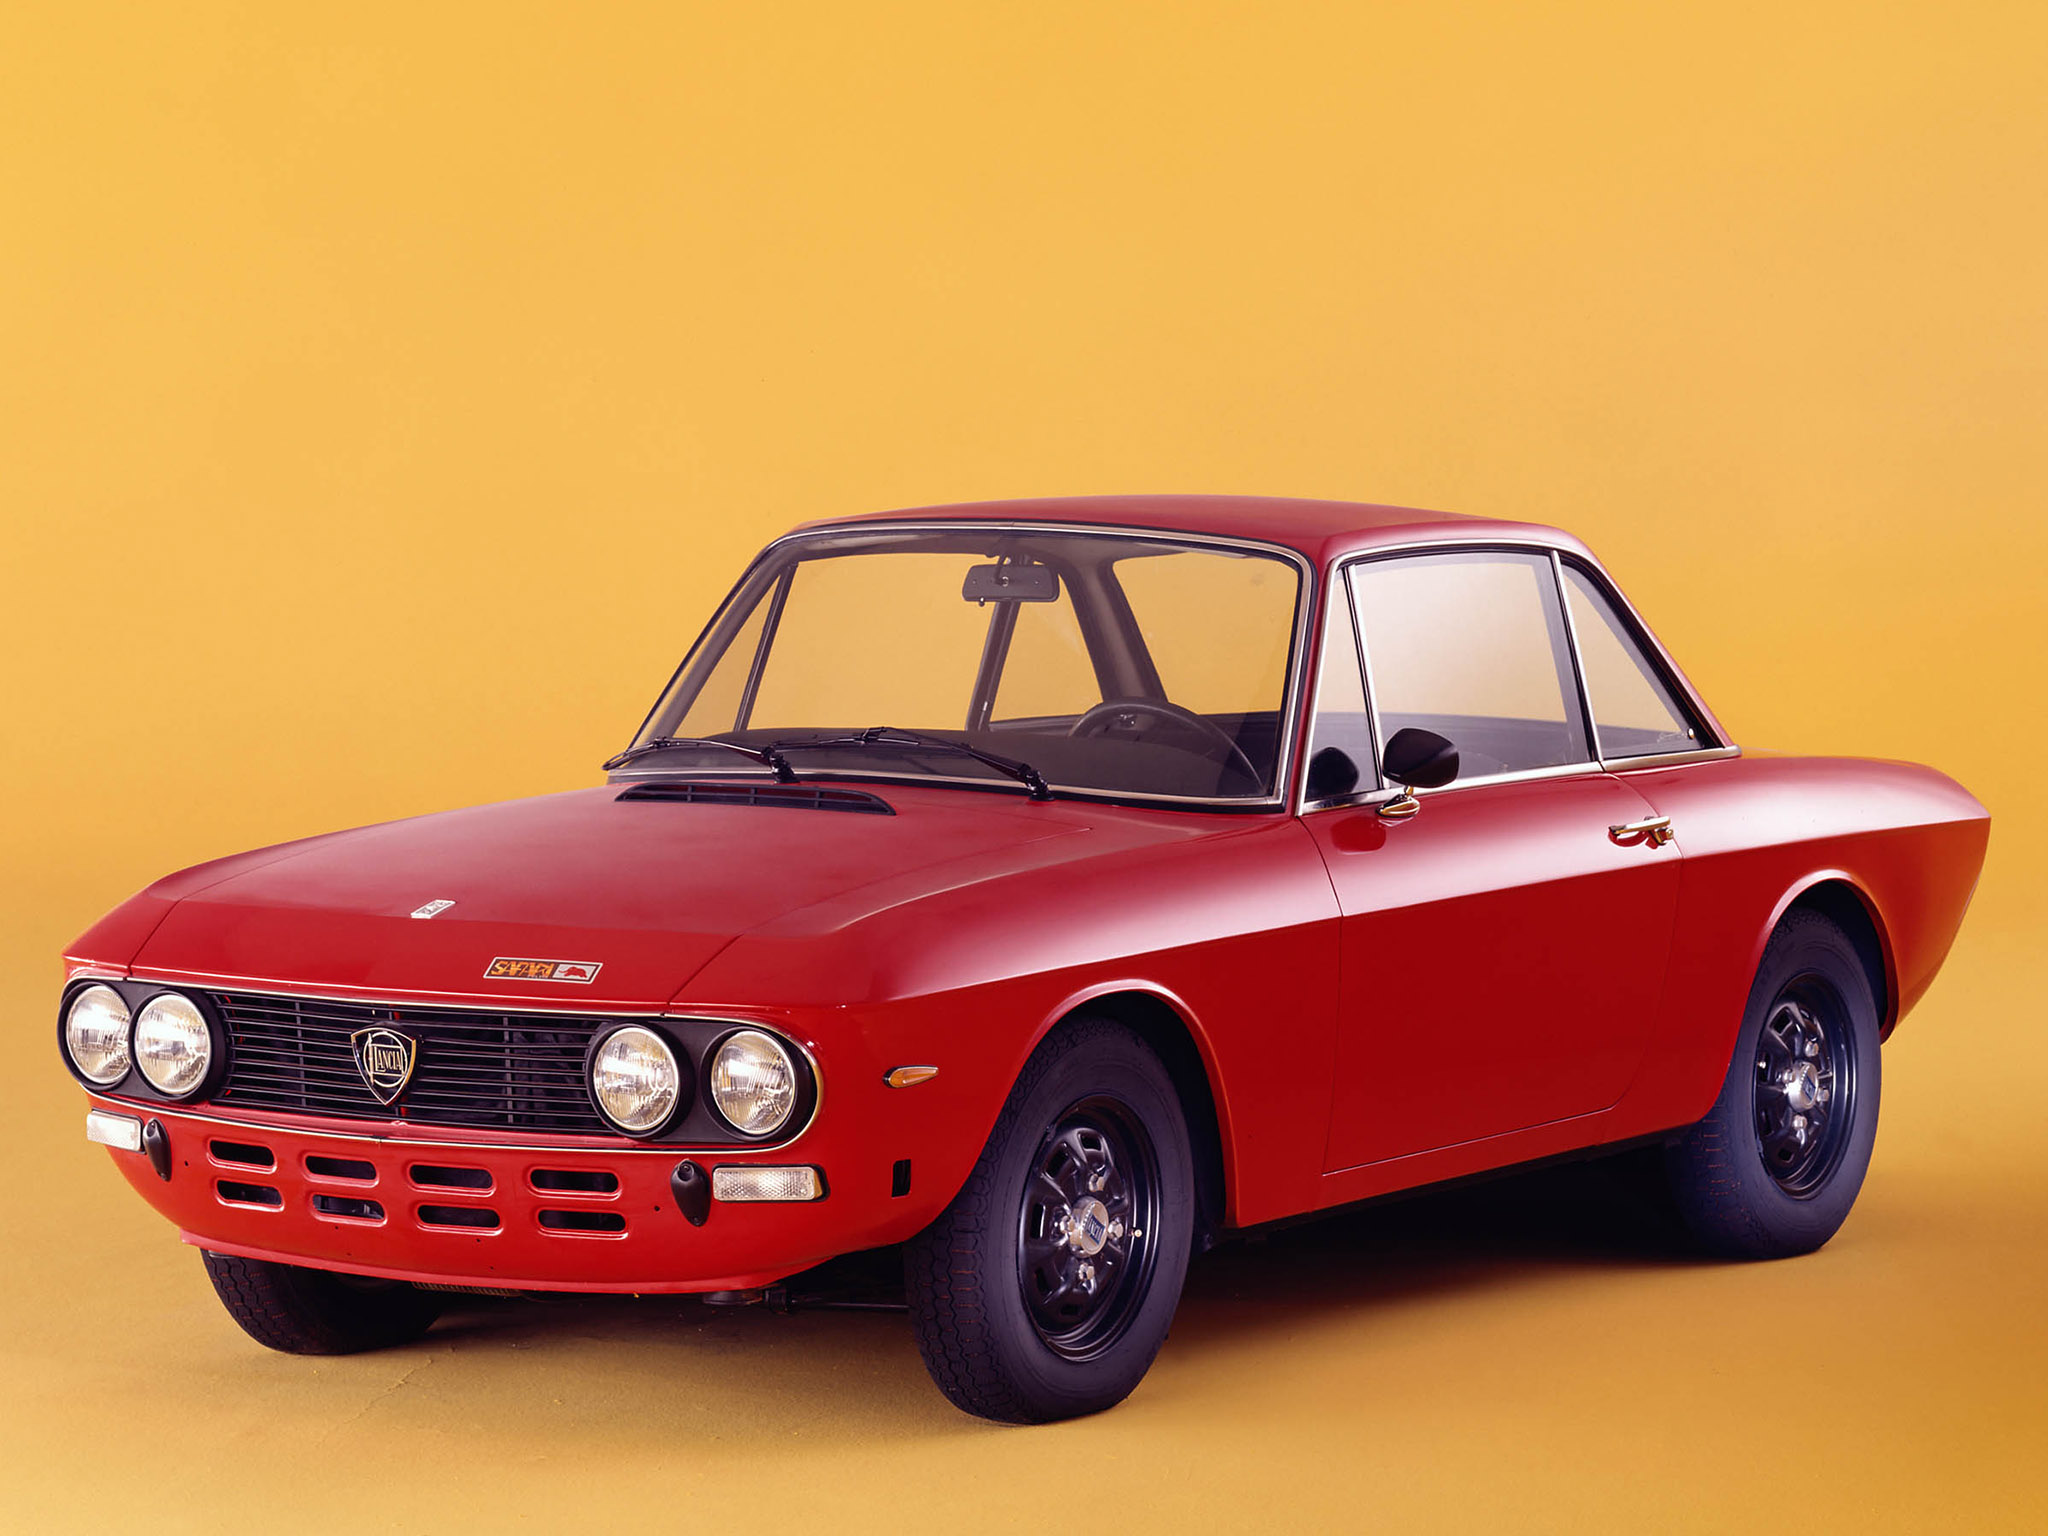 1967 Lancia Fulvia Coupe Rally 1.3HF